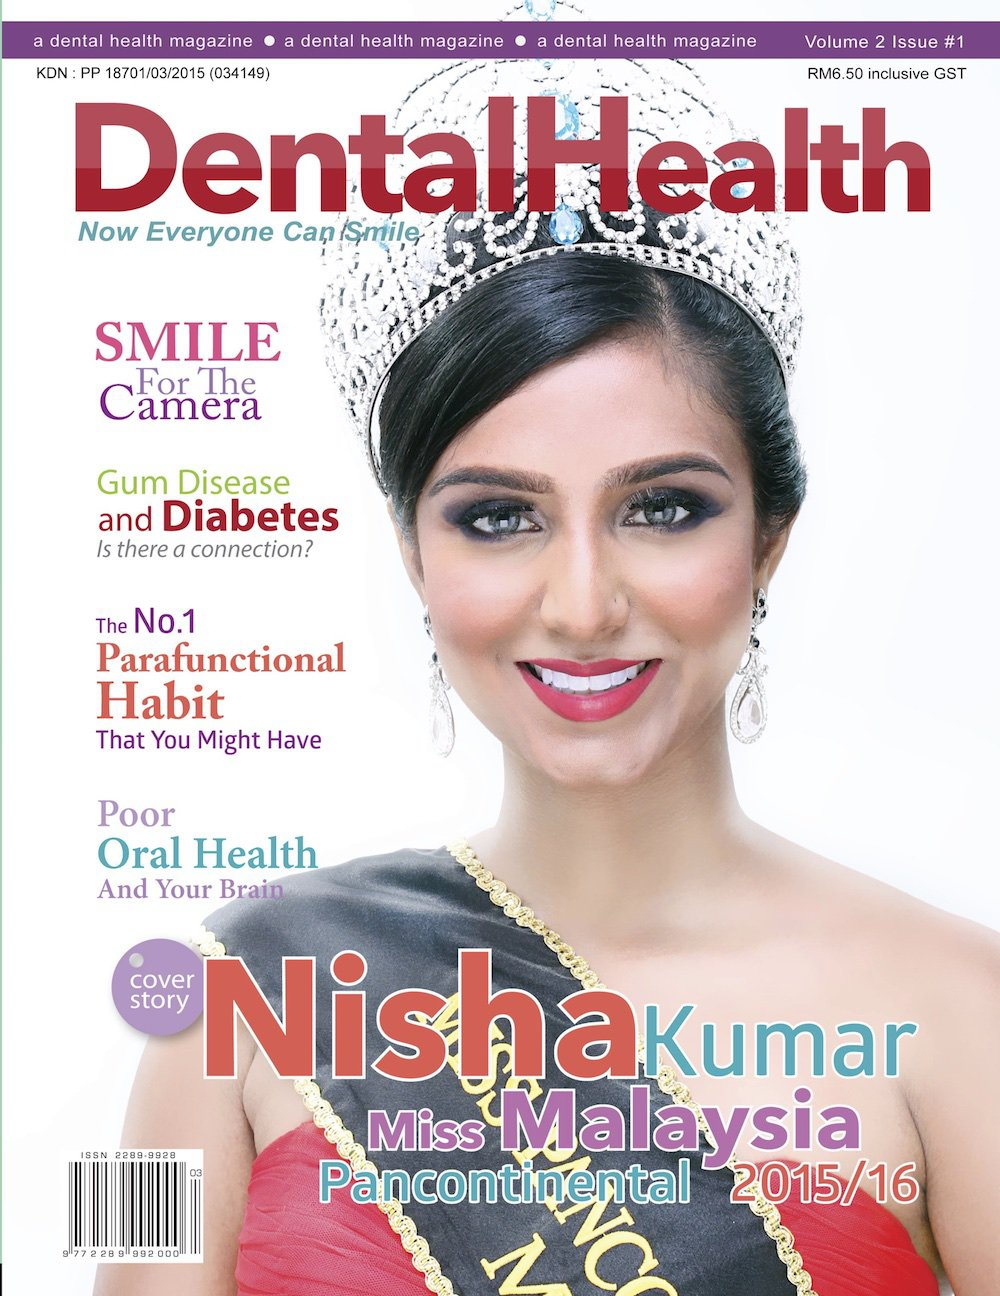 dental-health-magazine-volume-2-issue-2-malaysia-5